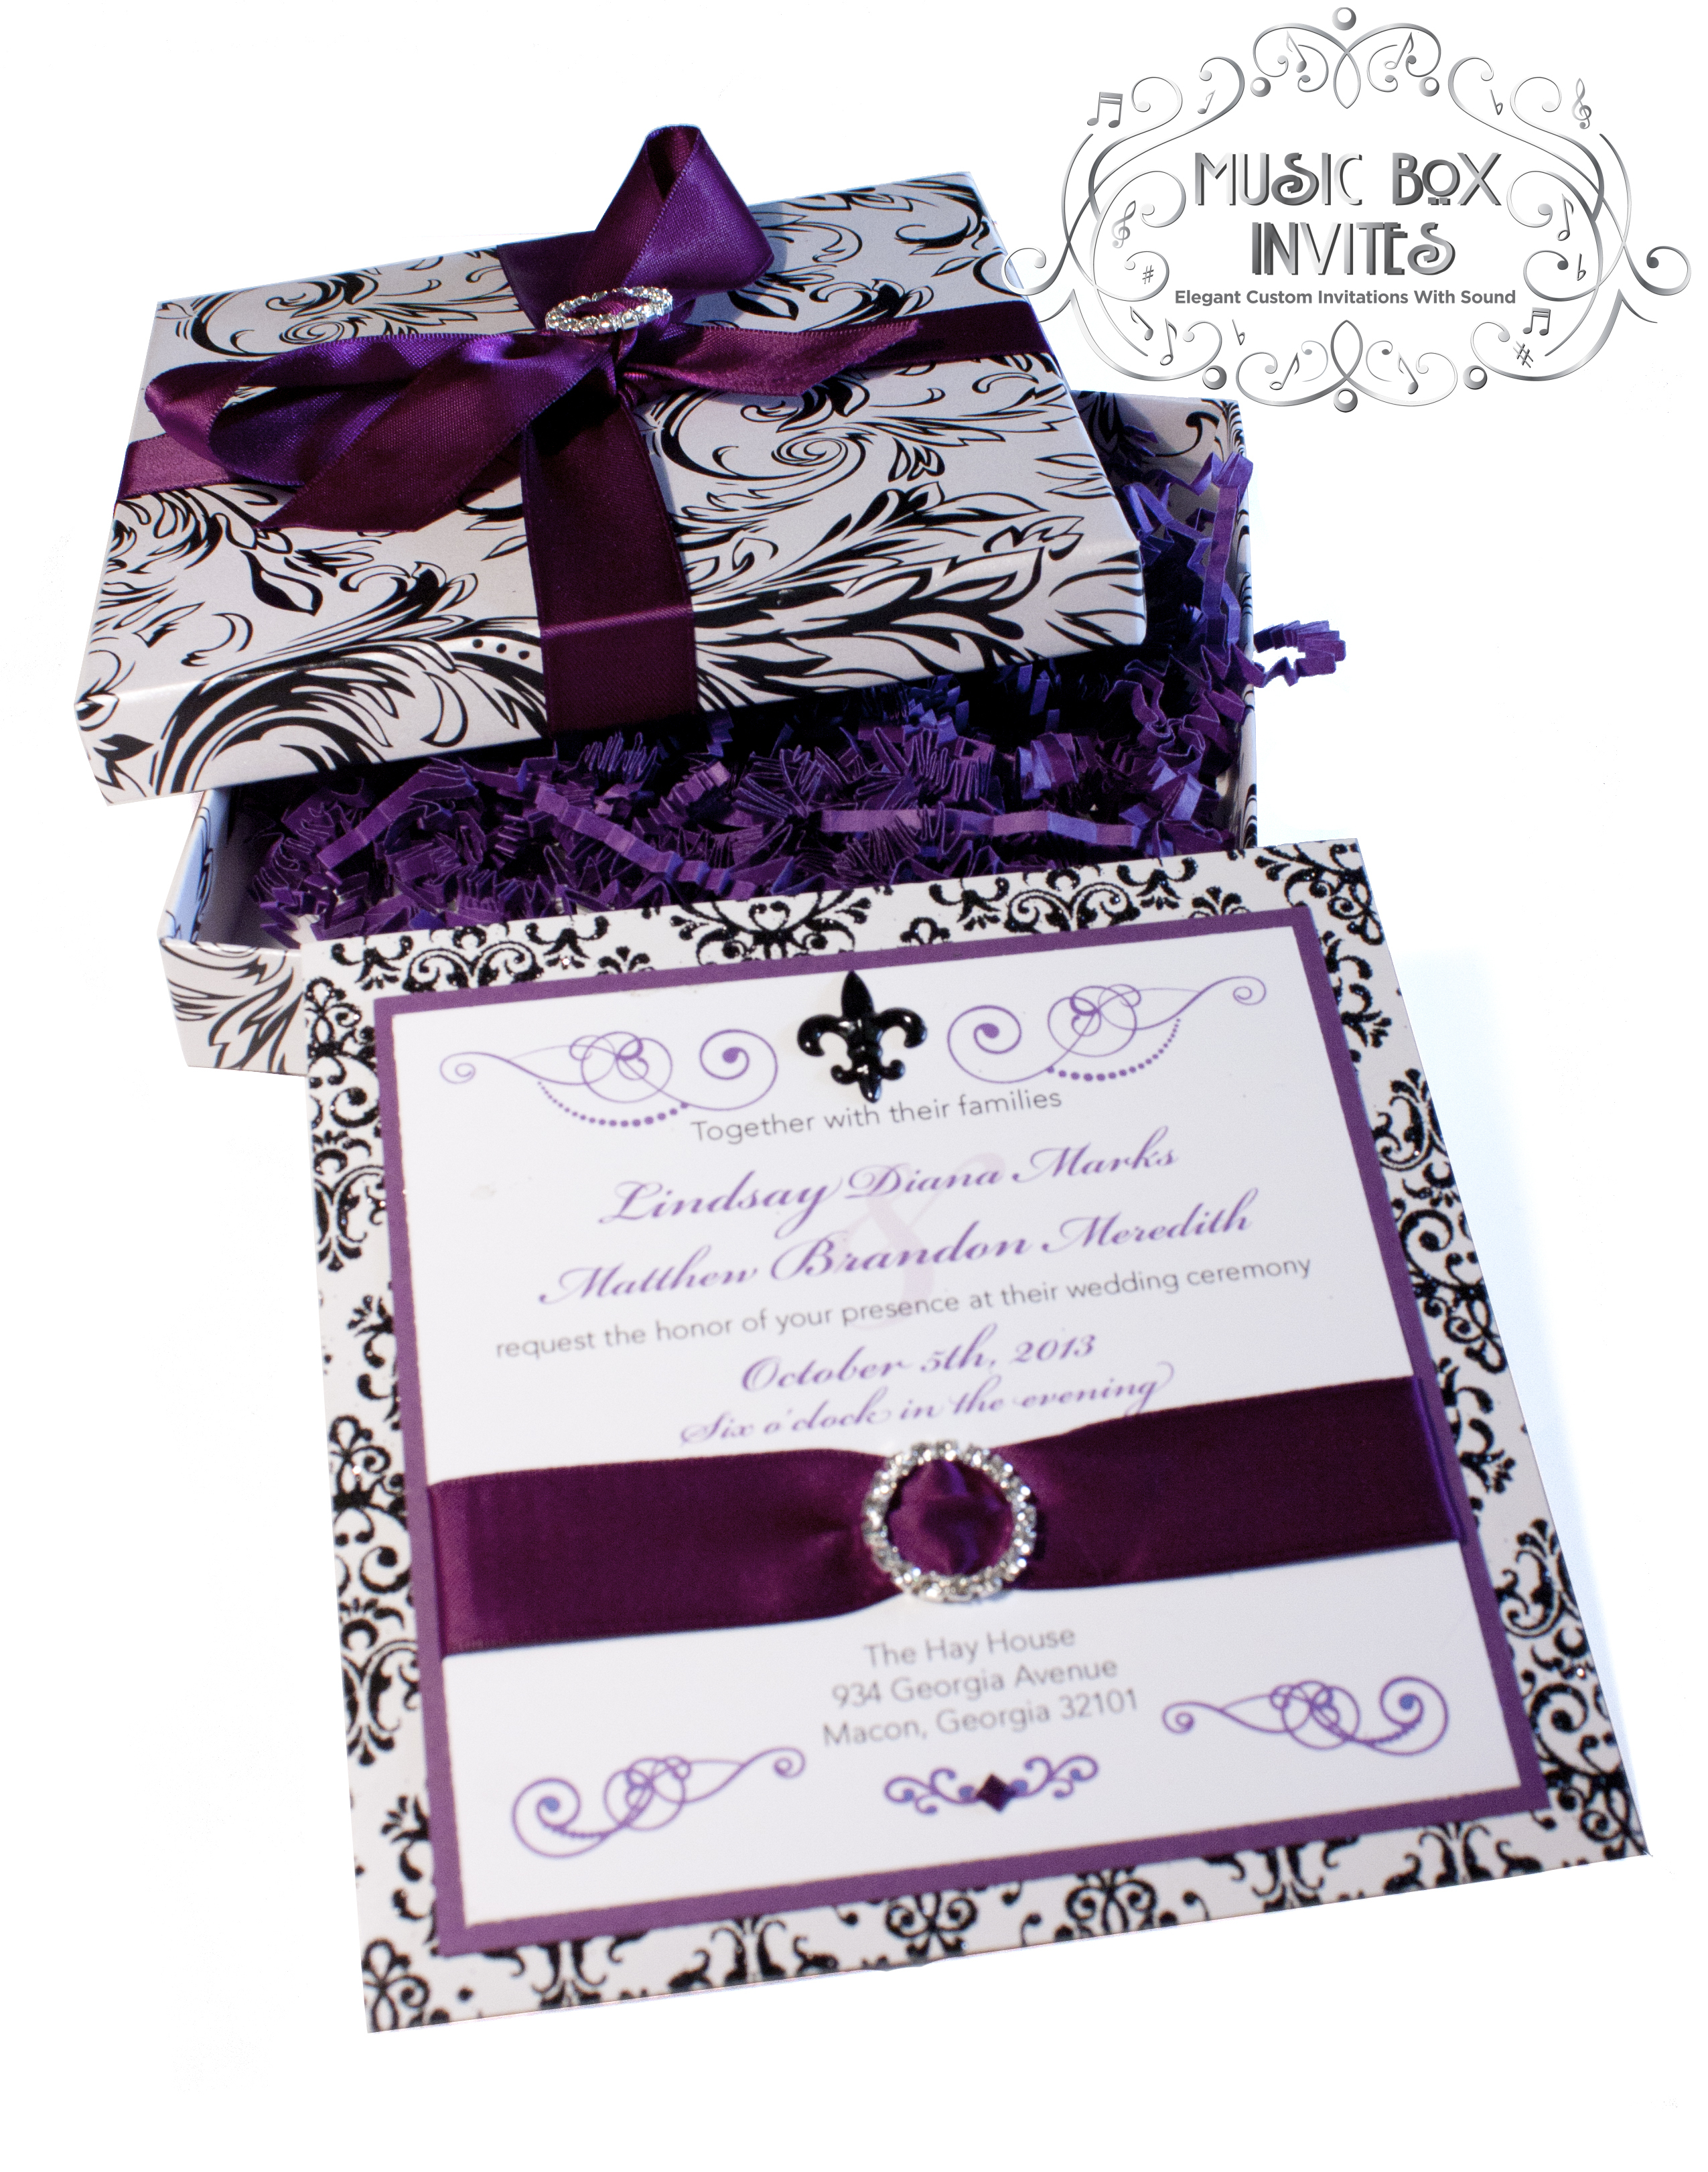 Musical Wedding or Party Invitation and RSVP Card in Damask Brocade ...